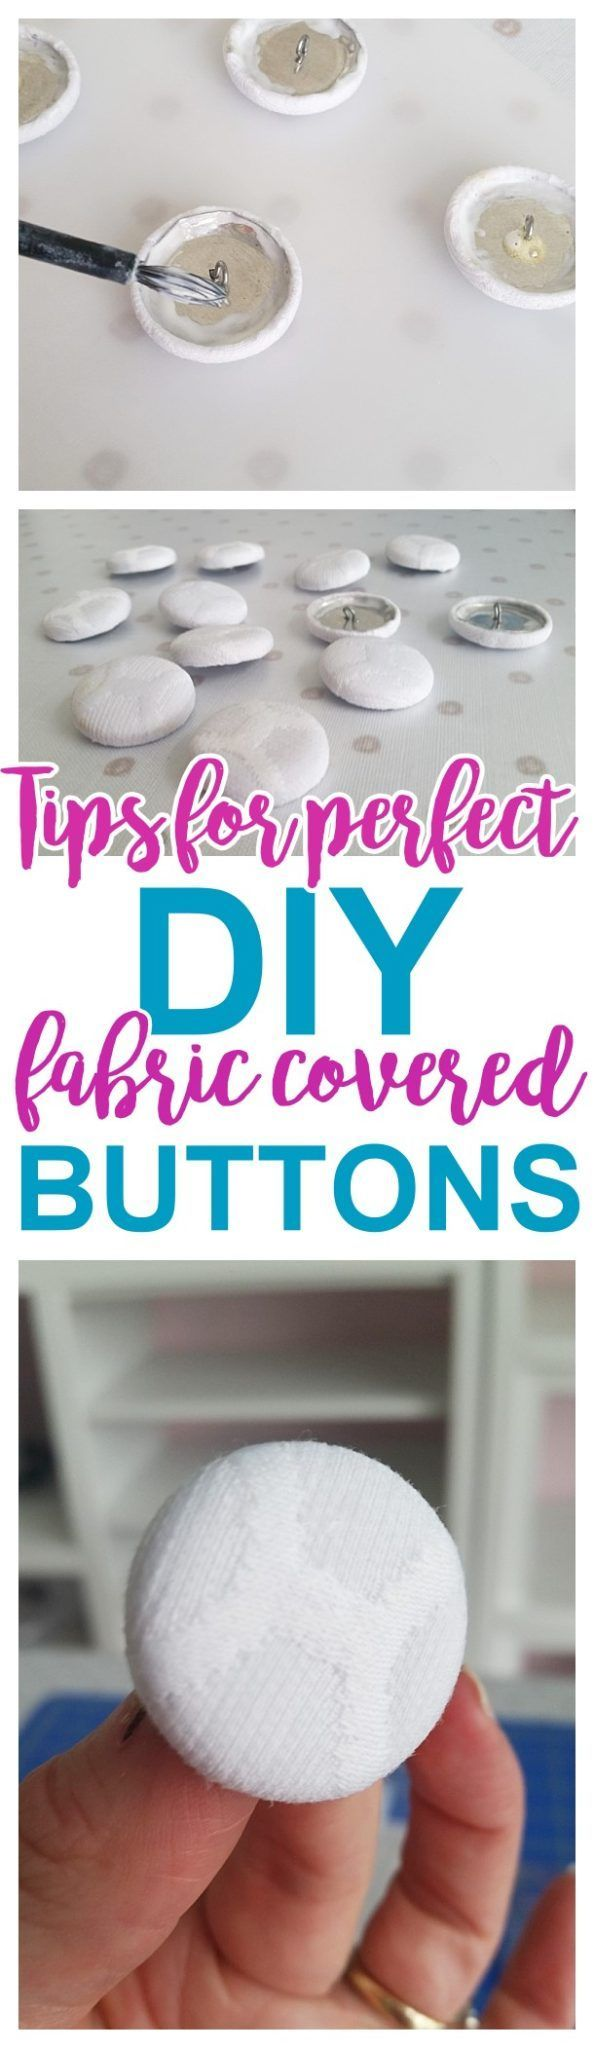 DIY Crafts : HOW TO: Use a button cover kit -DIY Upholstery